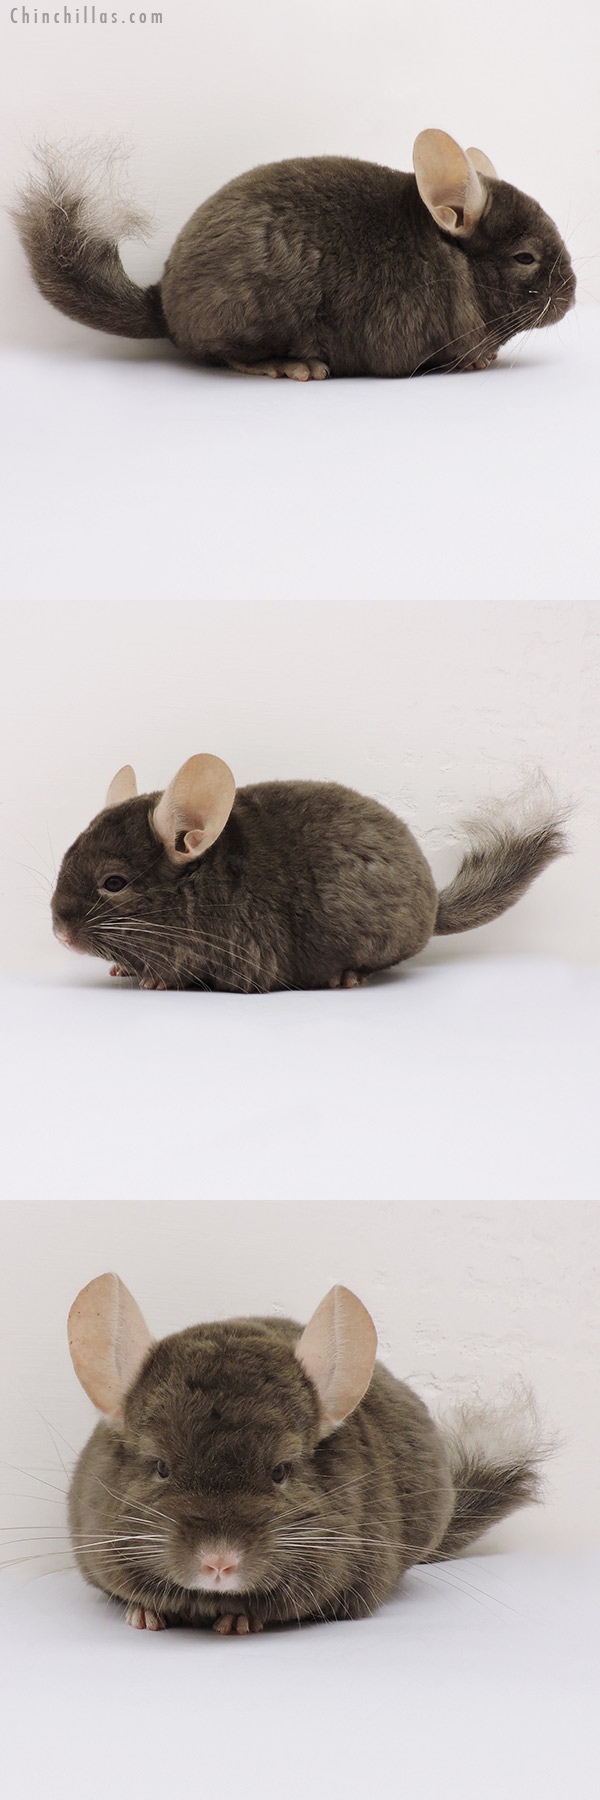 15277 Dark Tan Quasi Locken Female Chinchilla